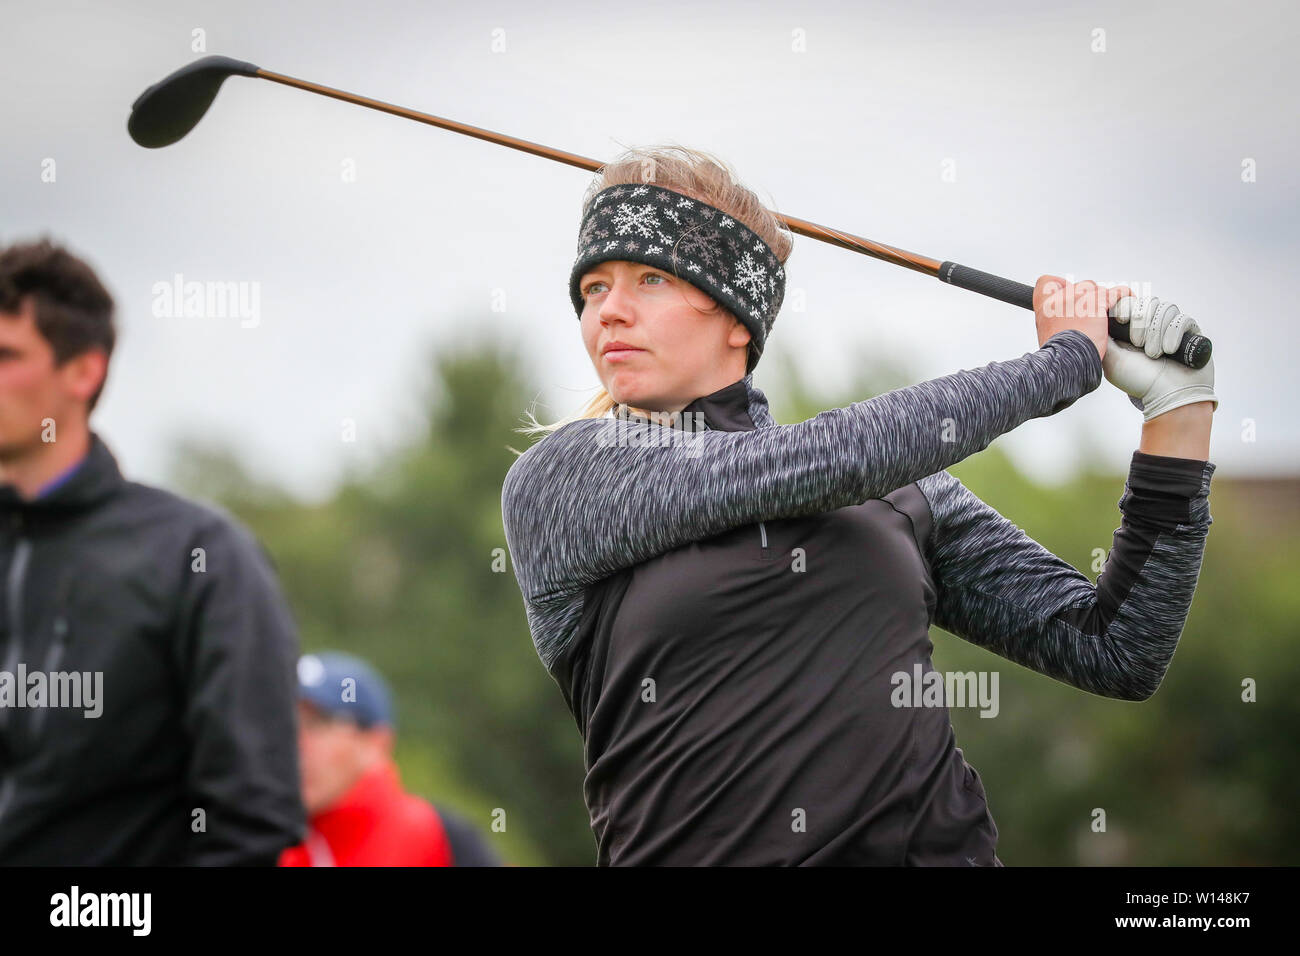 Troon, Scotland, UK. 30th June 2019. On the final day of the Competition the remaining 8 golfers, playing matchplay golf competed over Barassie Links Golf course, Troon in blustery wind and squally rain conditions to try and win the Championship Cup and the Clark Rosebowl. Image of KIMBERLEY BEVERIDGE representing Aboyne Golf club teeing off at the 15th Credit: Findlay/Alamy Live News - Stock Image